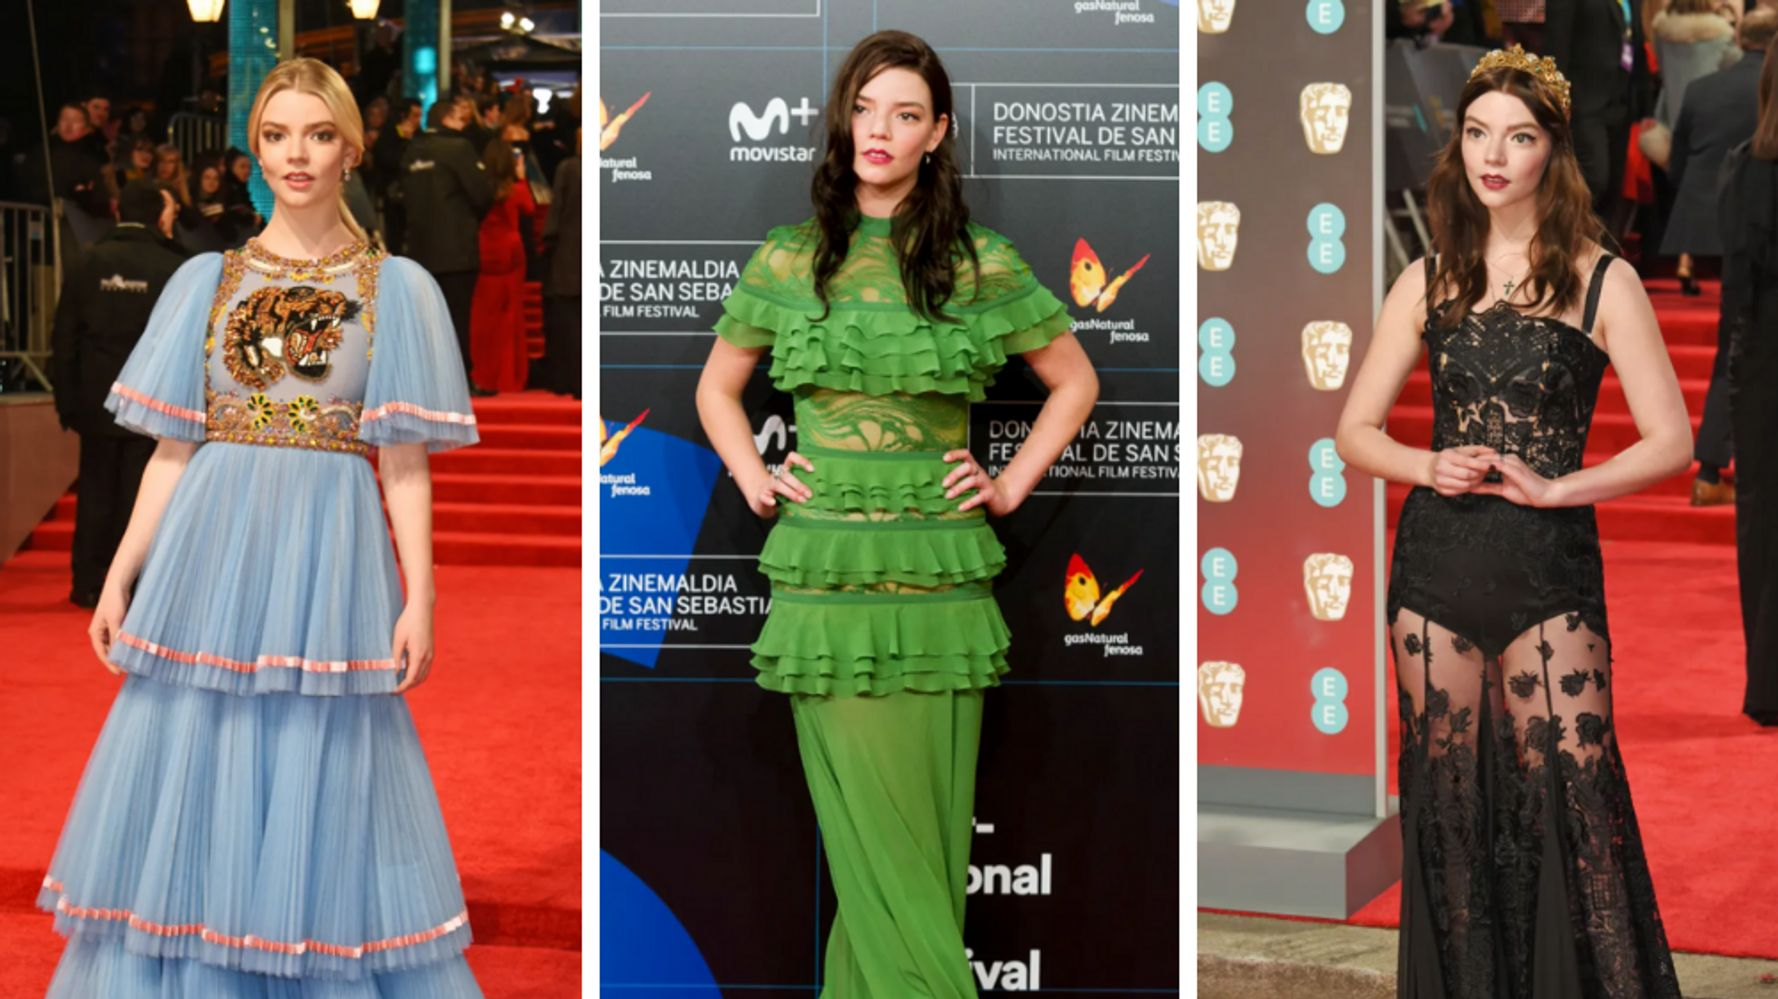 Anya Taylor-Joy's Style Evolution, From Budding Teen Star To Fashionista